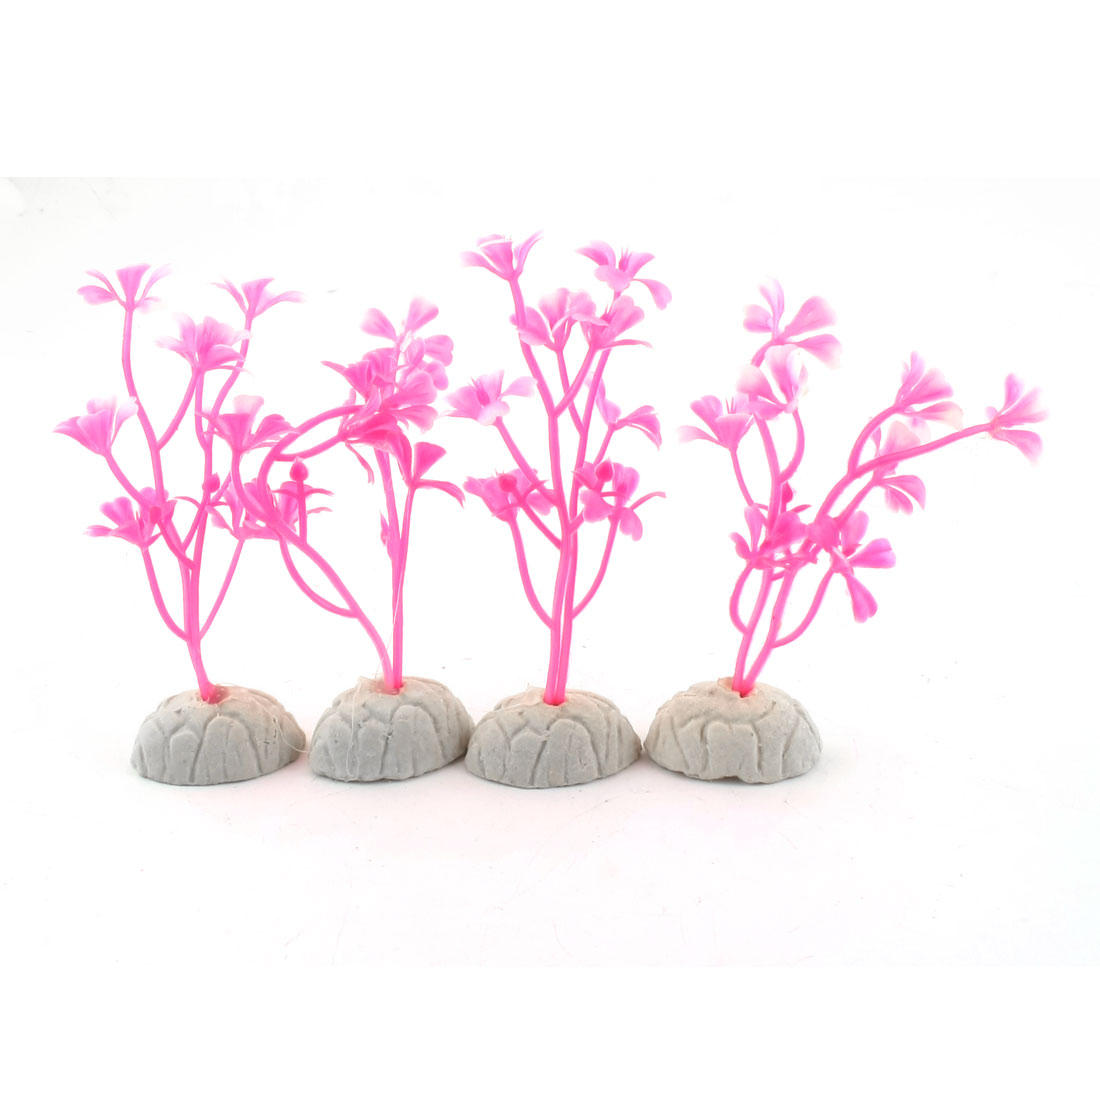 "5 Pcs Aquarium Pink Ceramic Base Plastic Emulational Plant Grass 3.5"" Height"